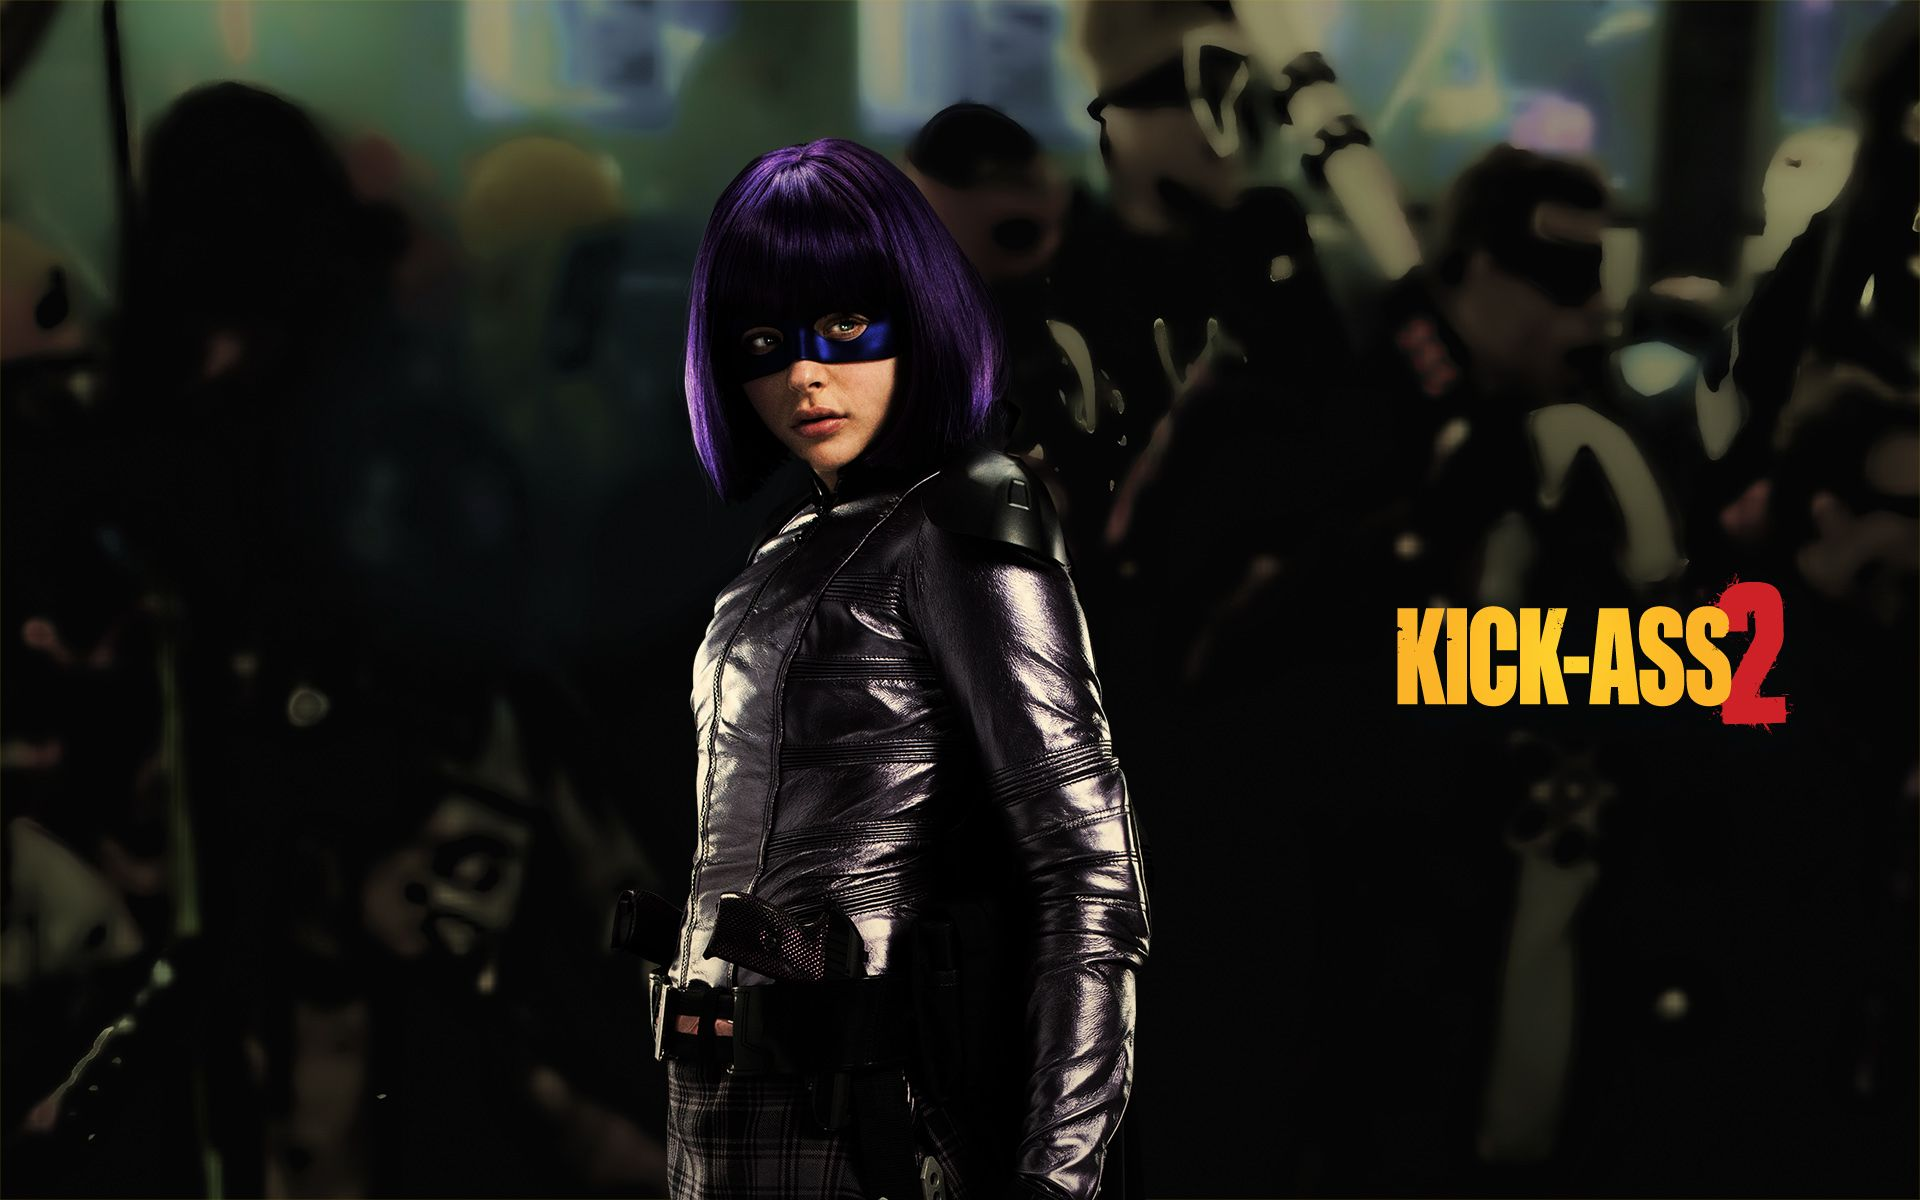 kick-ass-desktop-backgrounds-daughter-go-wildblack-porn